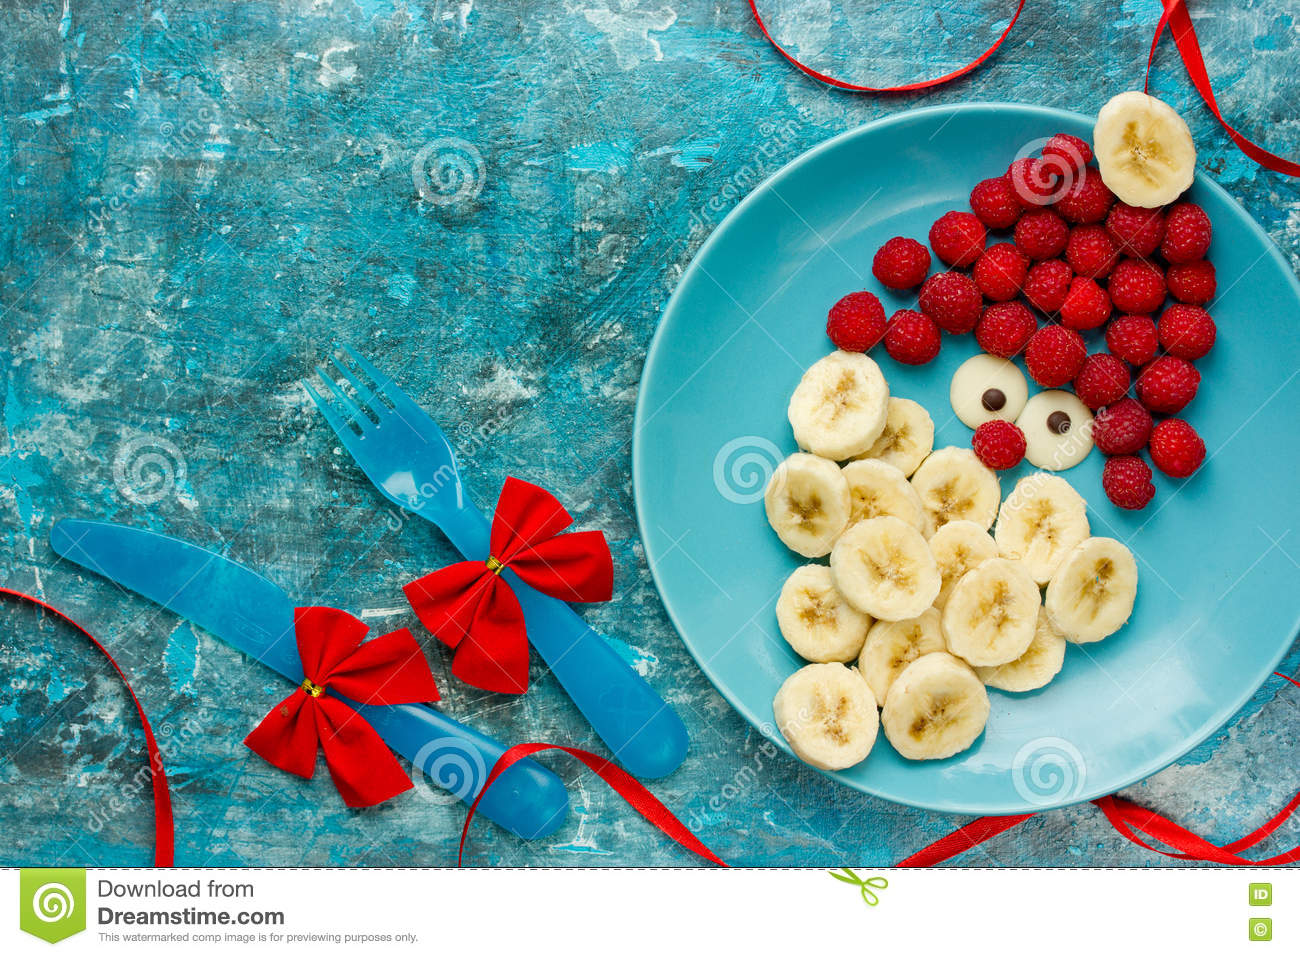 Healthy Christmas Dessert Snack Breakfast For Kids - Raspberry B ...